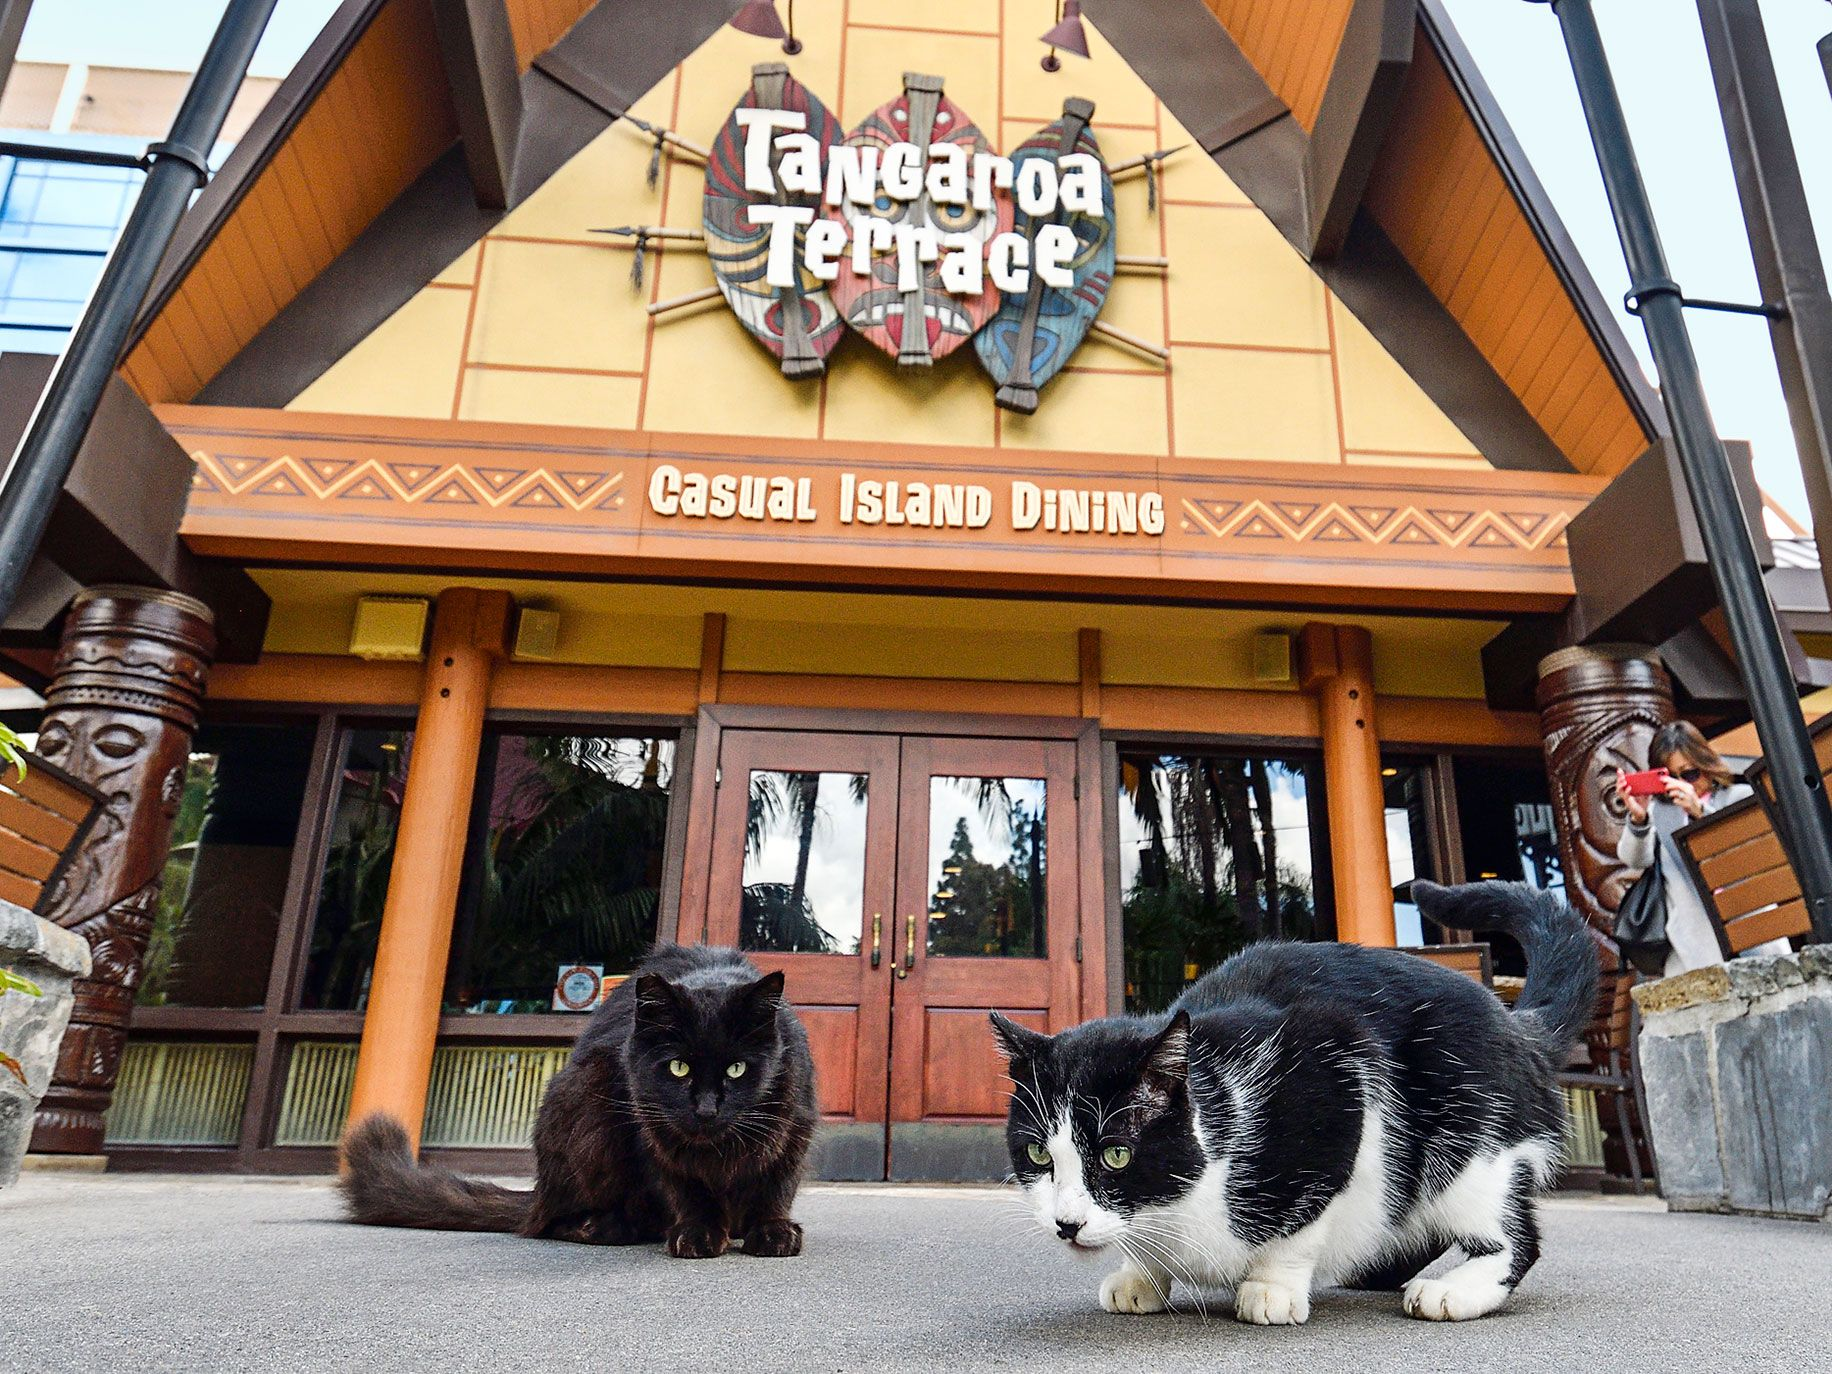 Sammy and Pepper, two feral cats who live at the Disneyland Resort, sit in front of Trader Sam's restaurant as an onlooker takes their picture.